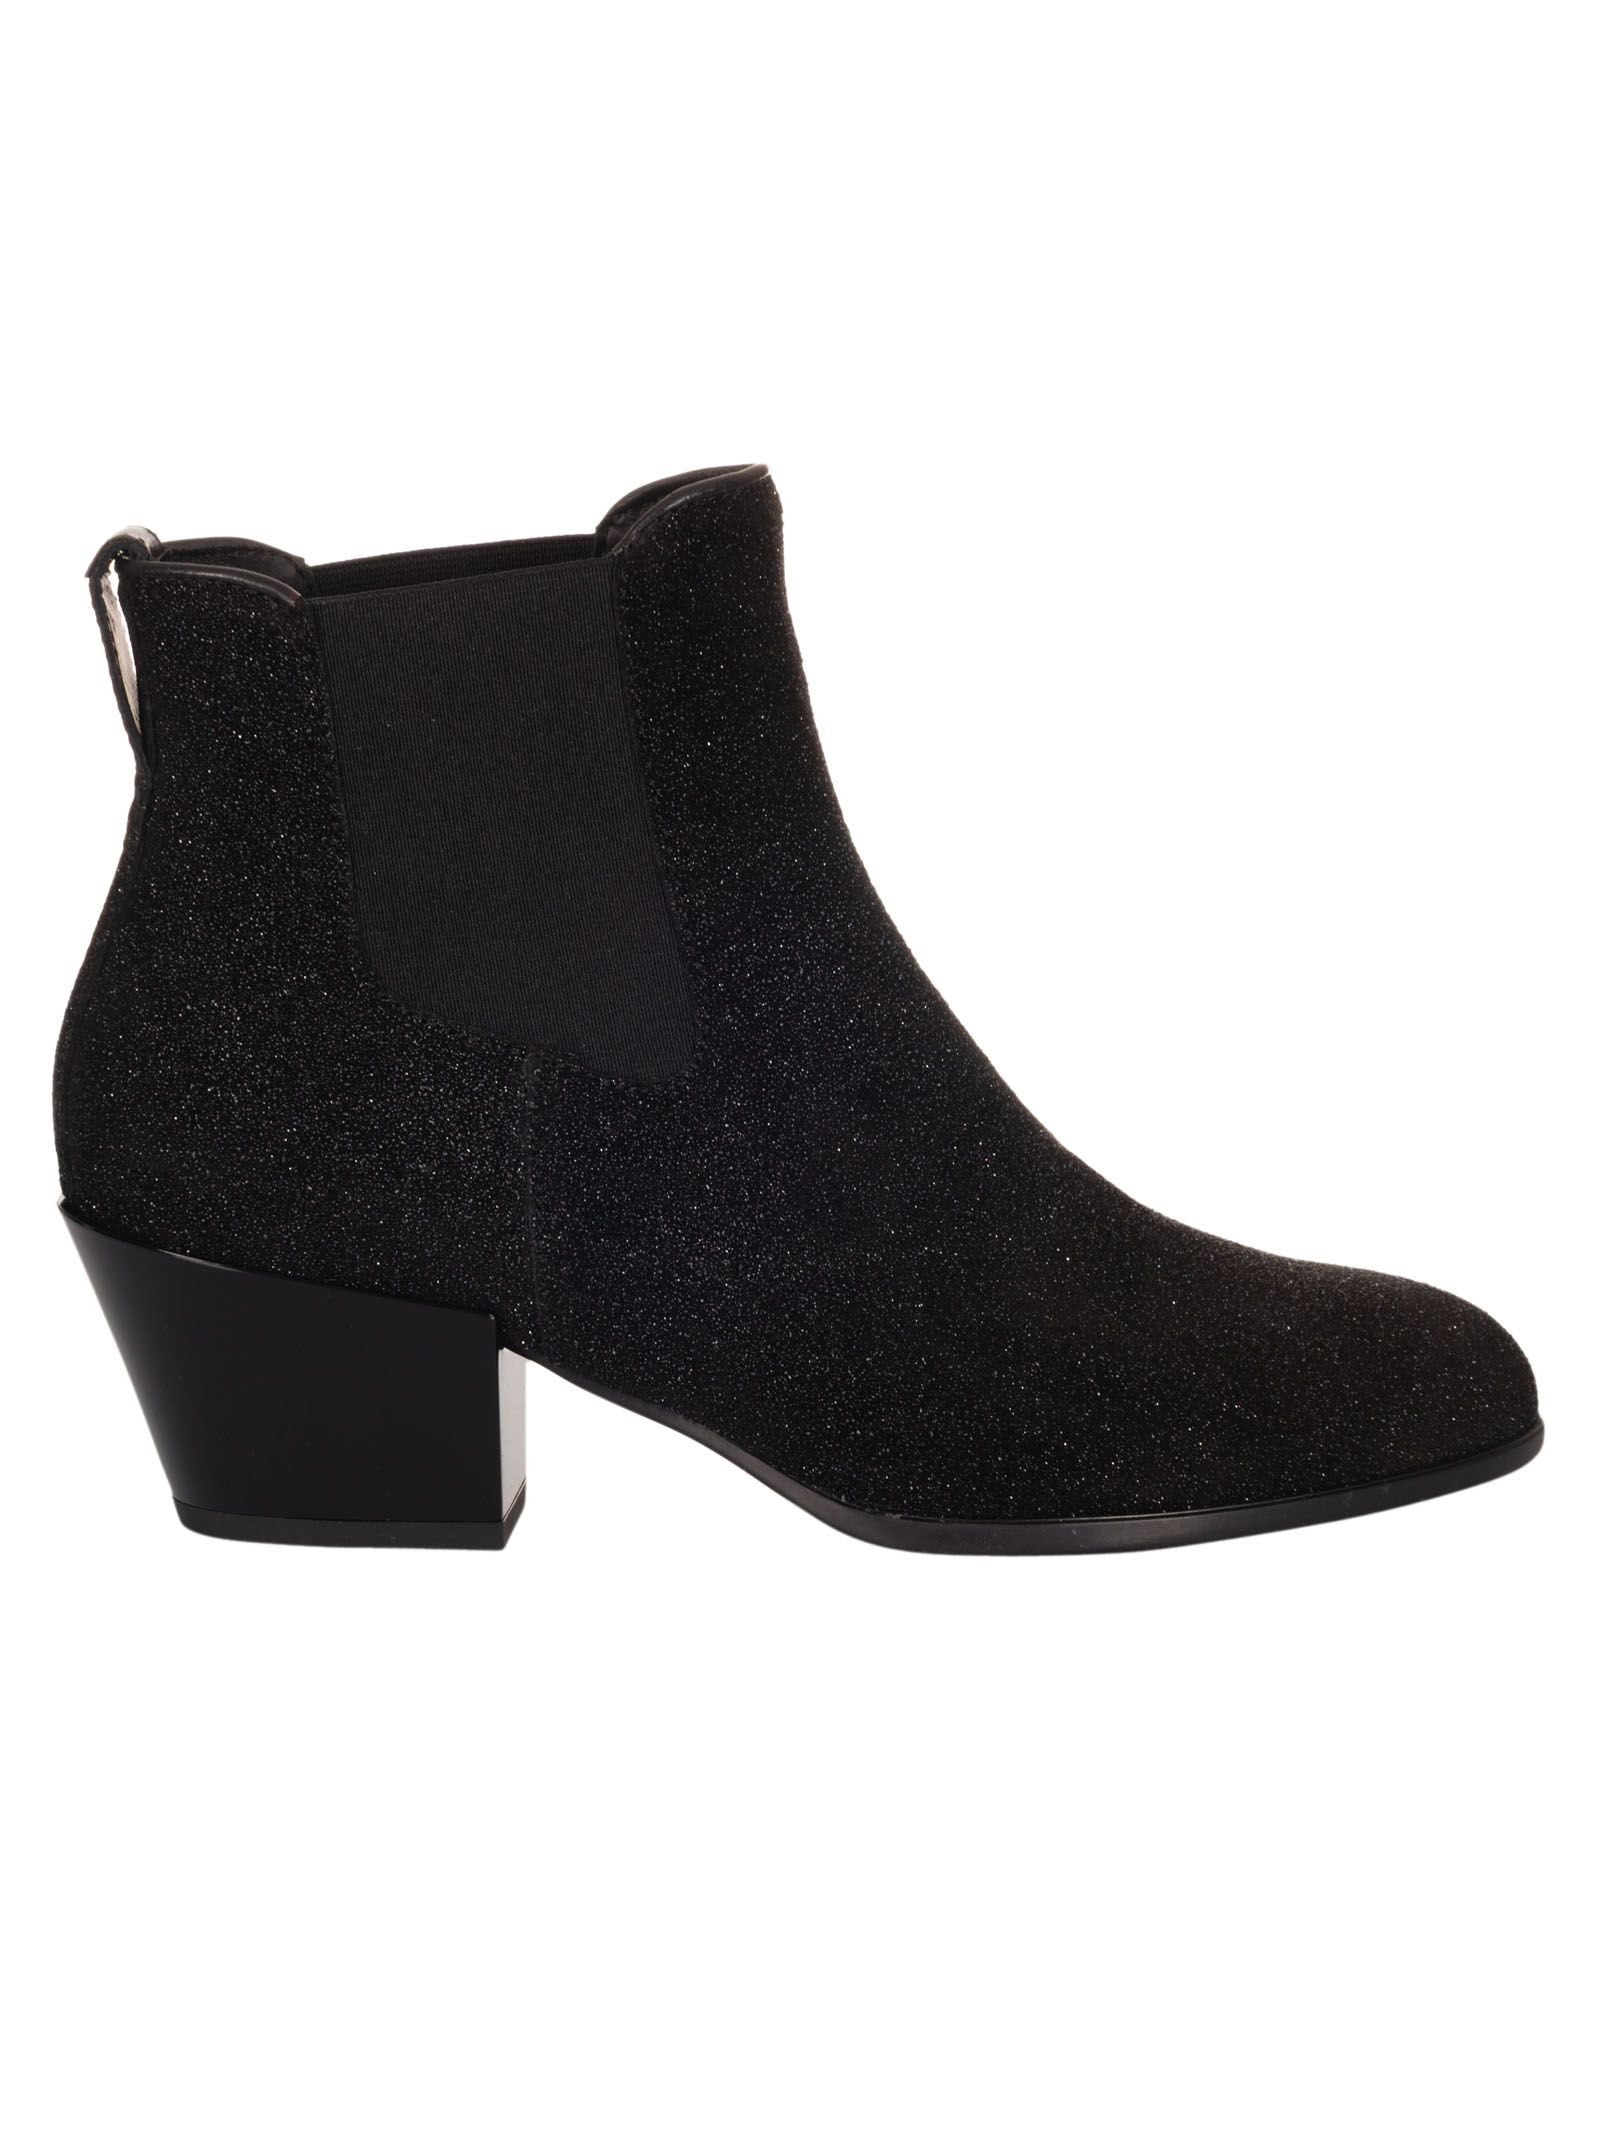 Hogan H401 Glitter Ankle Boots